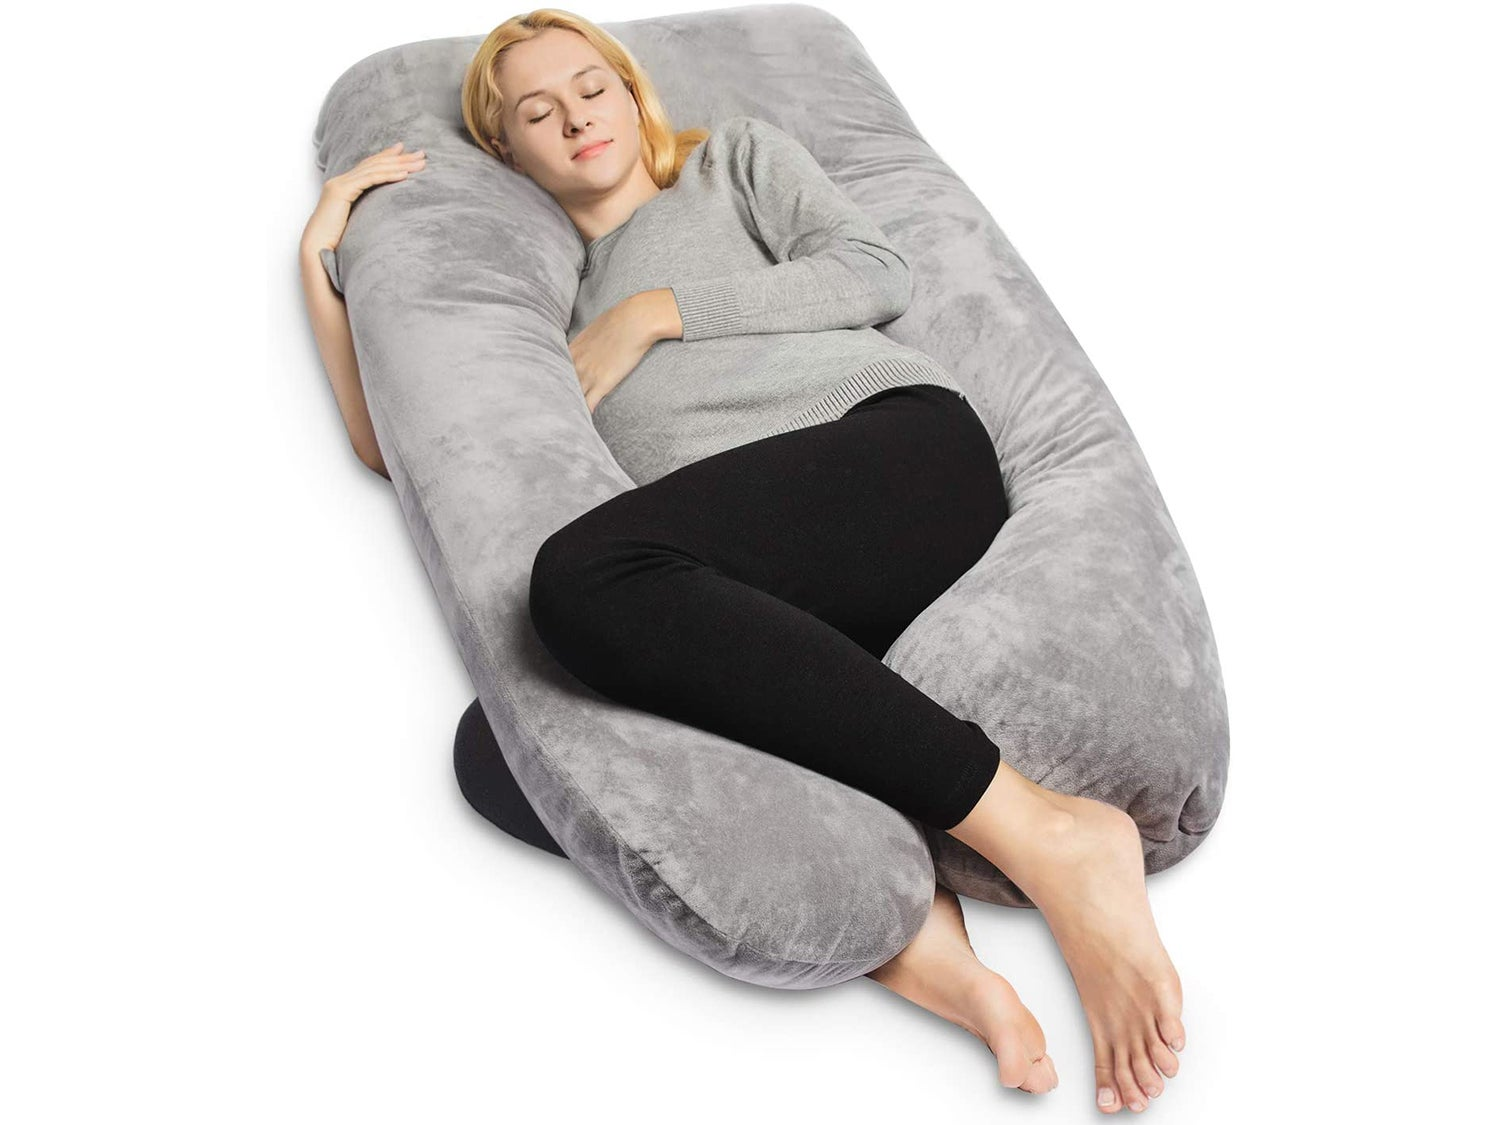 QUEEN ROSE Pregnancy Pillow with Cover-Maternity Body Pillow U Shaped Pillow for Back,Gray